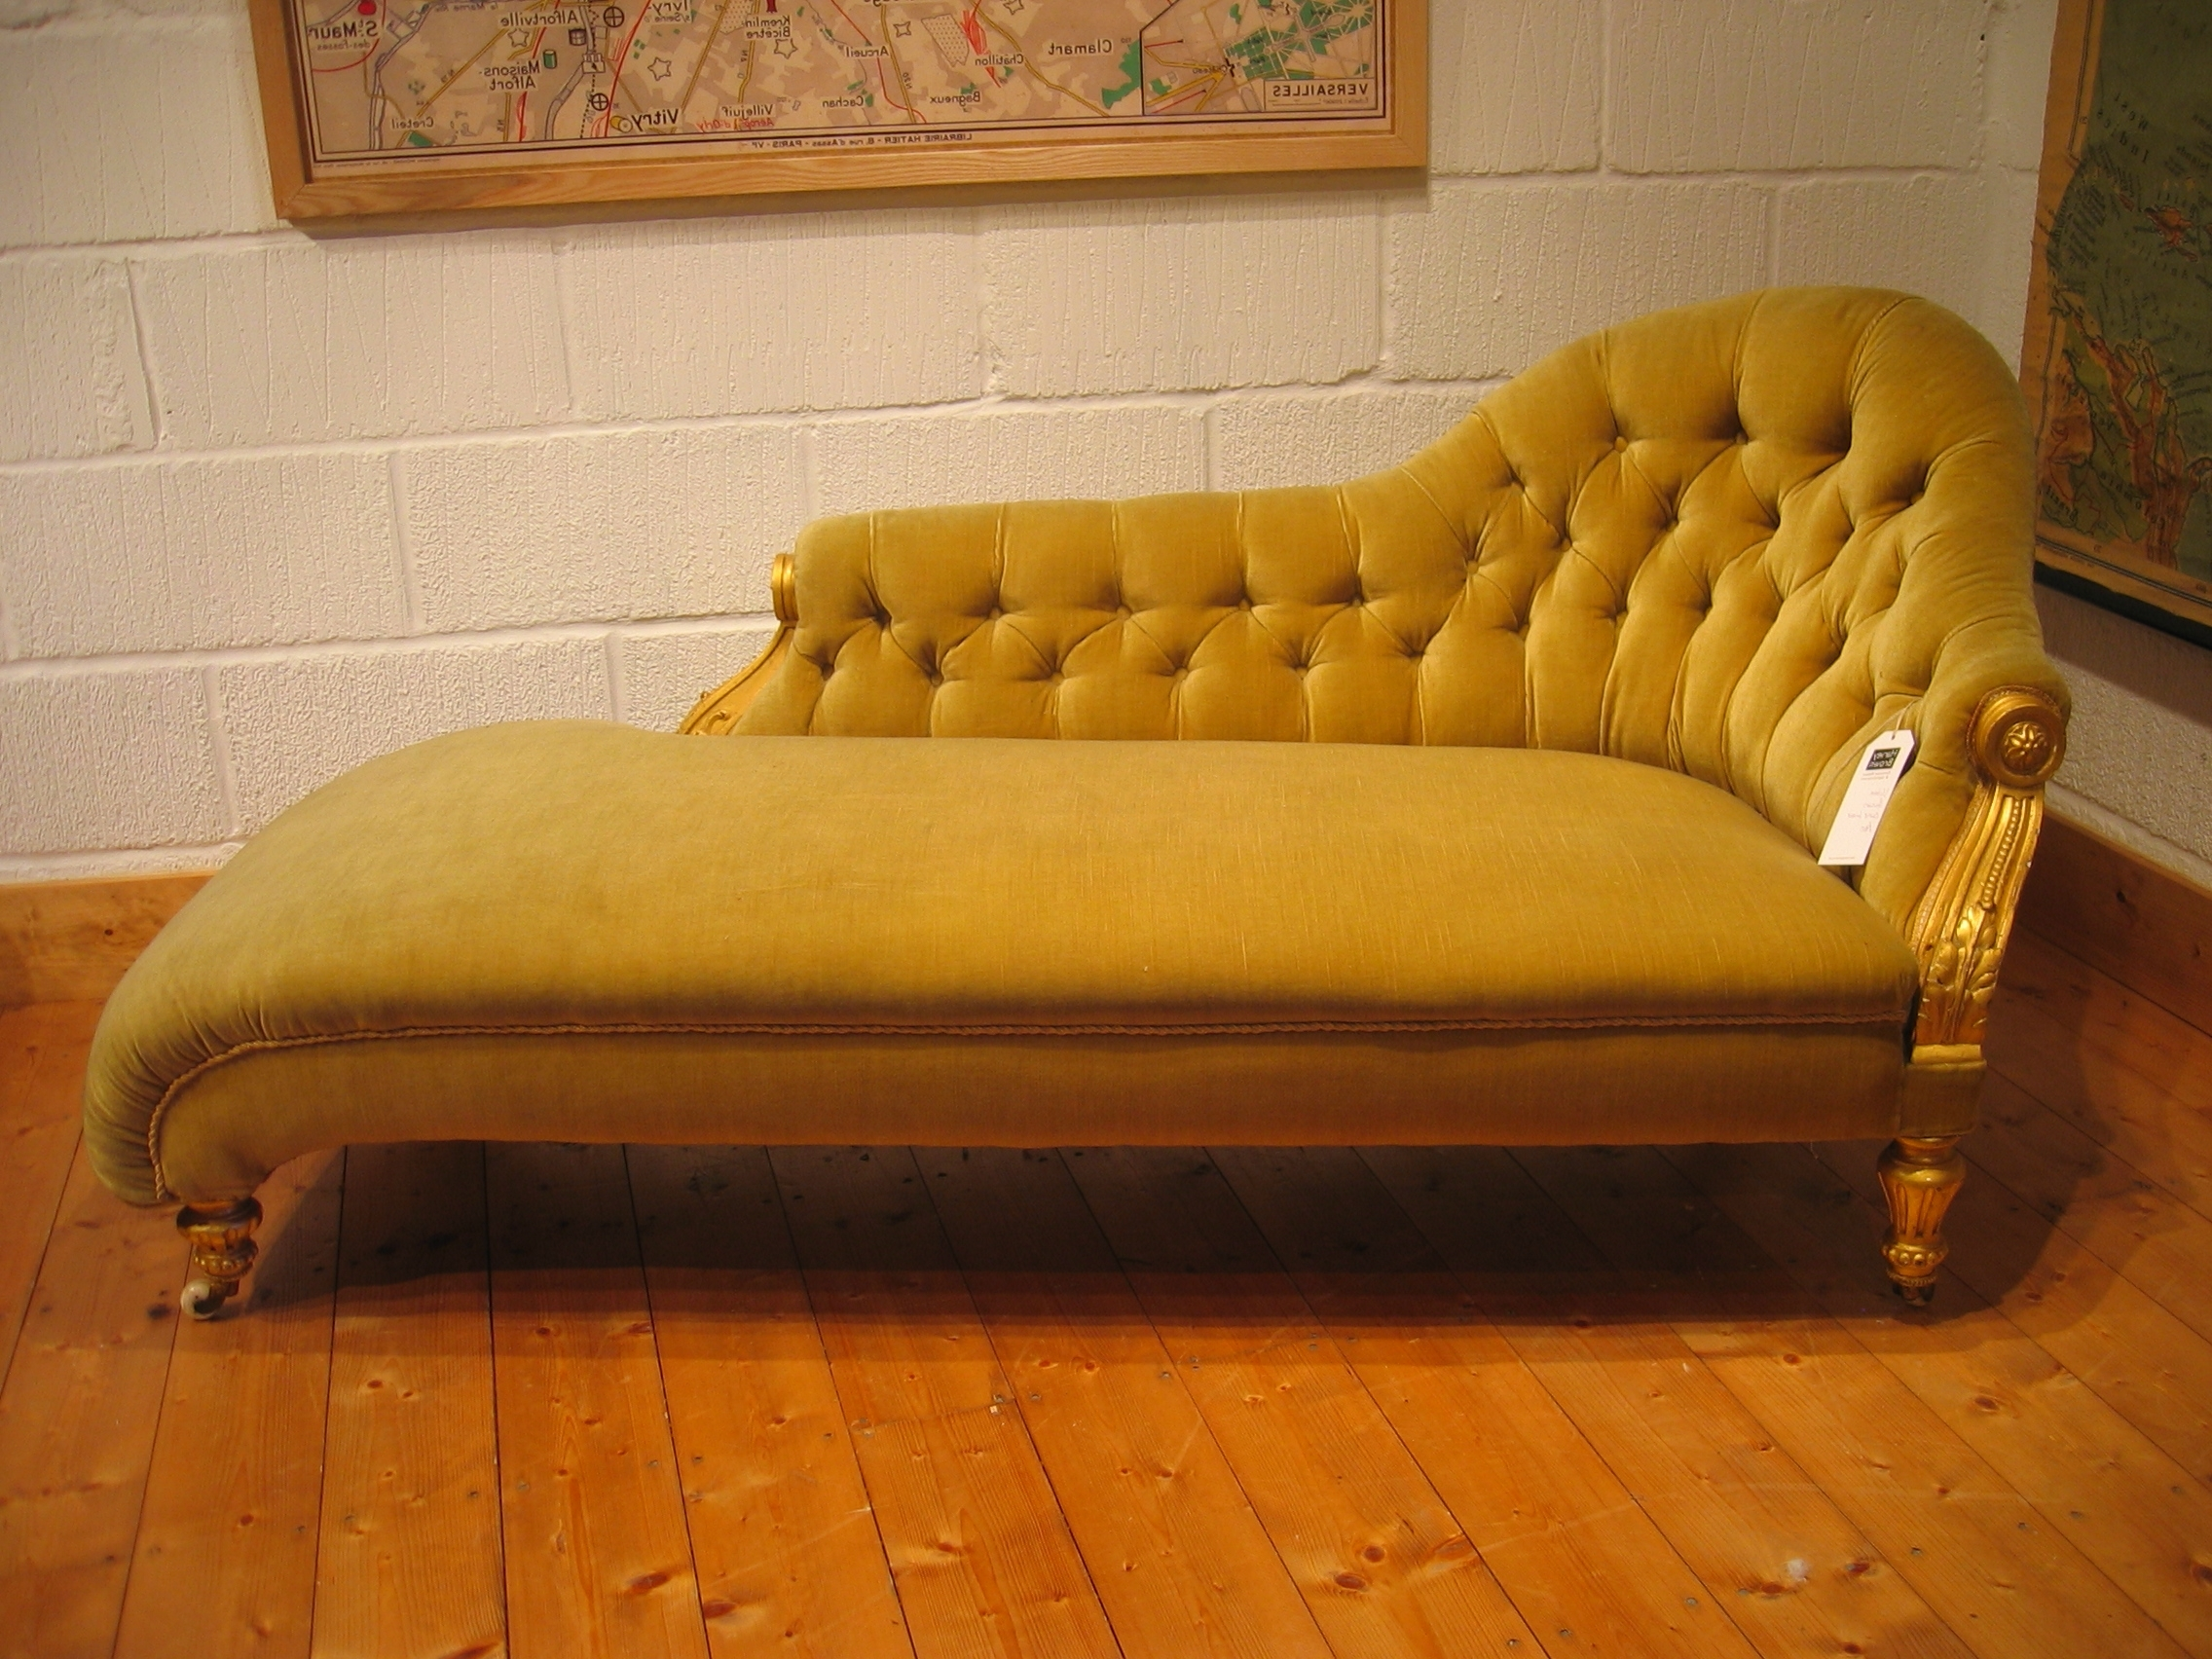 Yellow Color Antique Victorian Chaise Lounge Sofa Bed With Wooden Pertaining To Fashionable Vintage Chaise Lounges (Gallery 15 of 15)